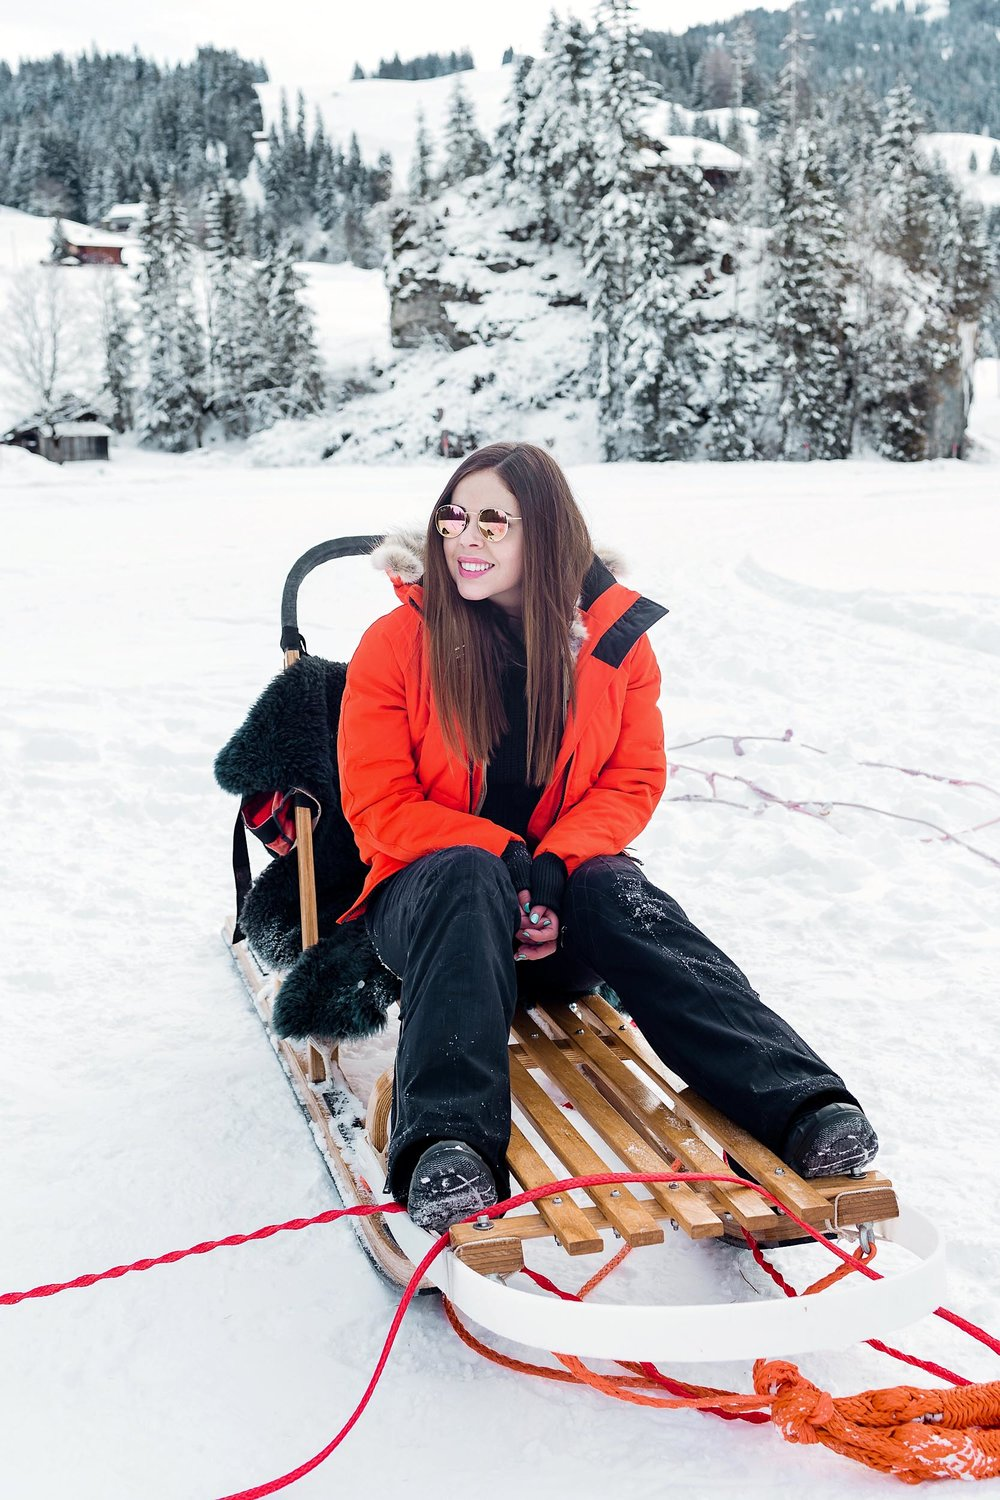 Dog sledding in Switzerland - the perfect winter adventure!